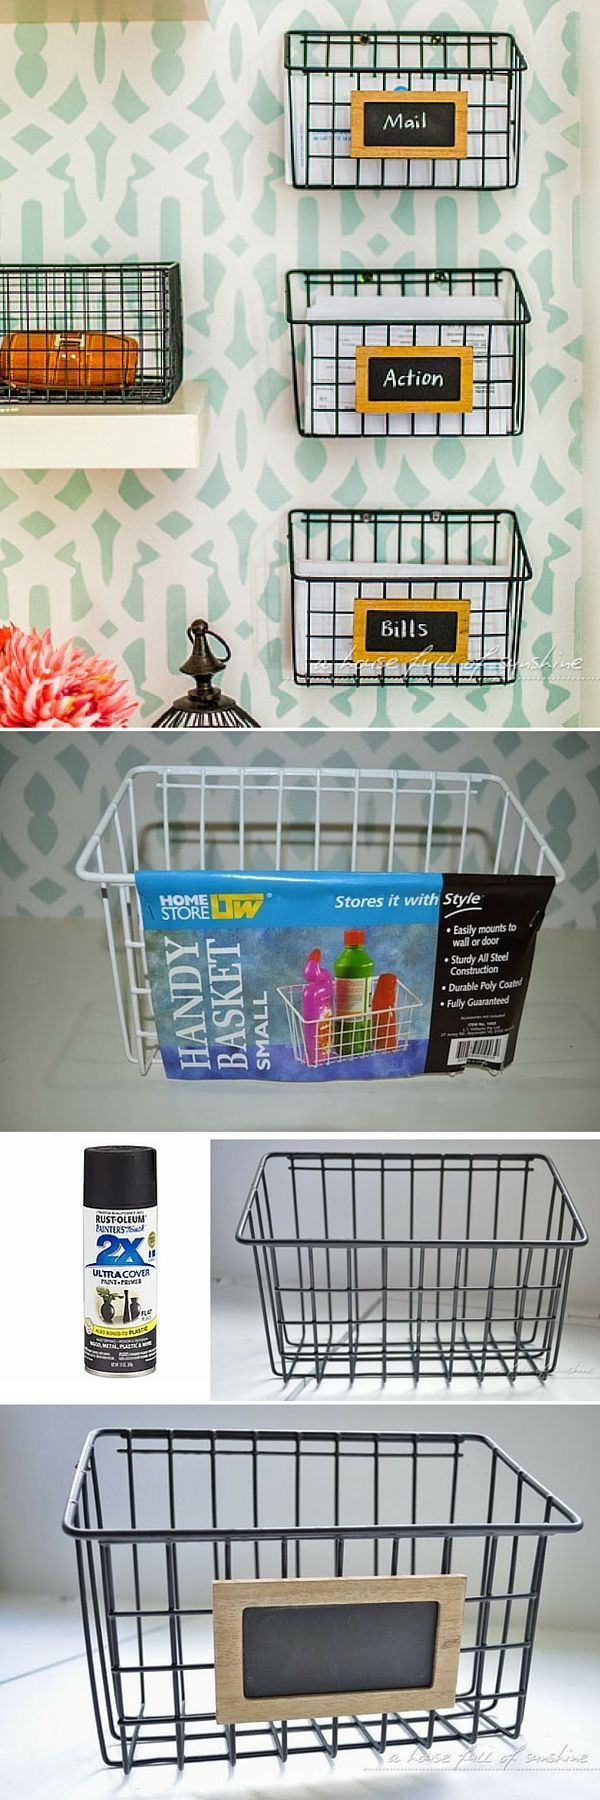 15 DIY Projects to Make Your Home Look Classy - http://centophobe.com/15-diy-projects-to-make-your-home-look-classy/ -